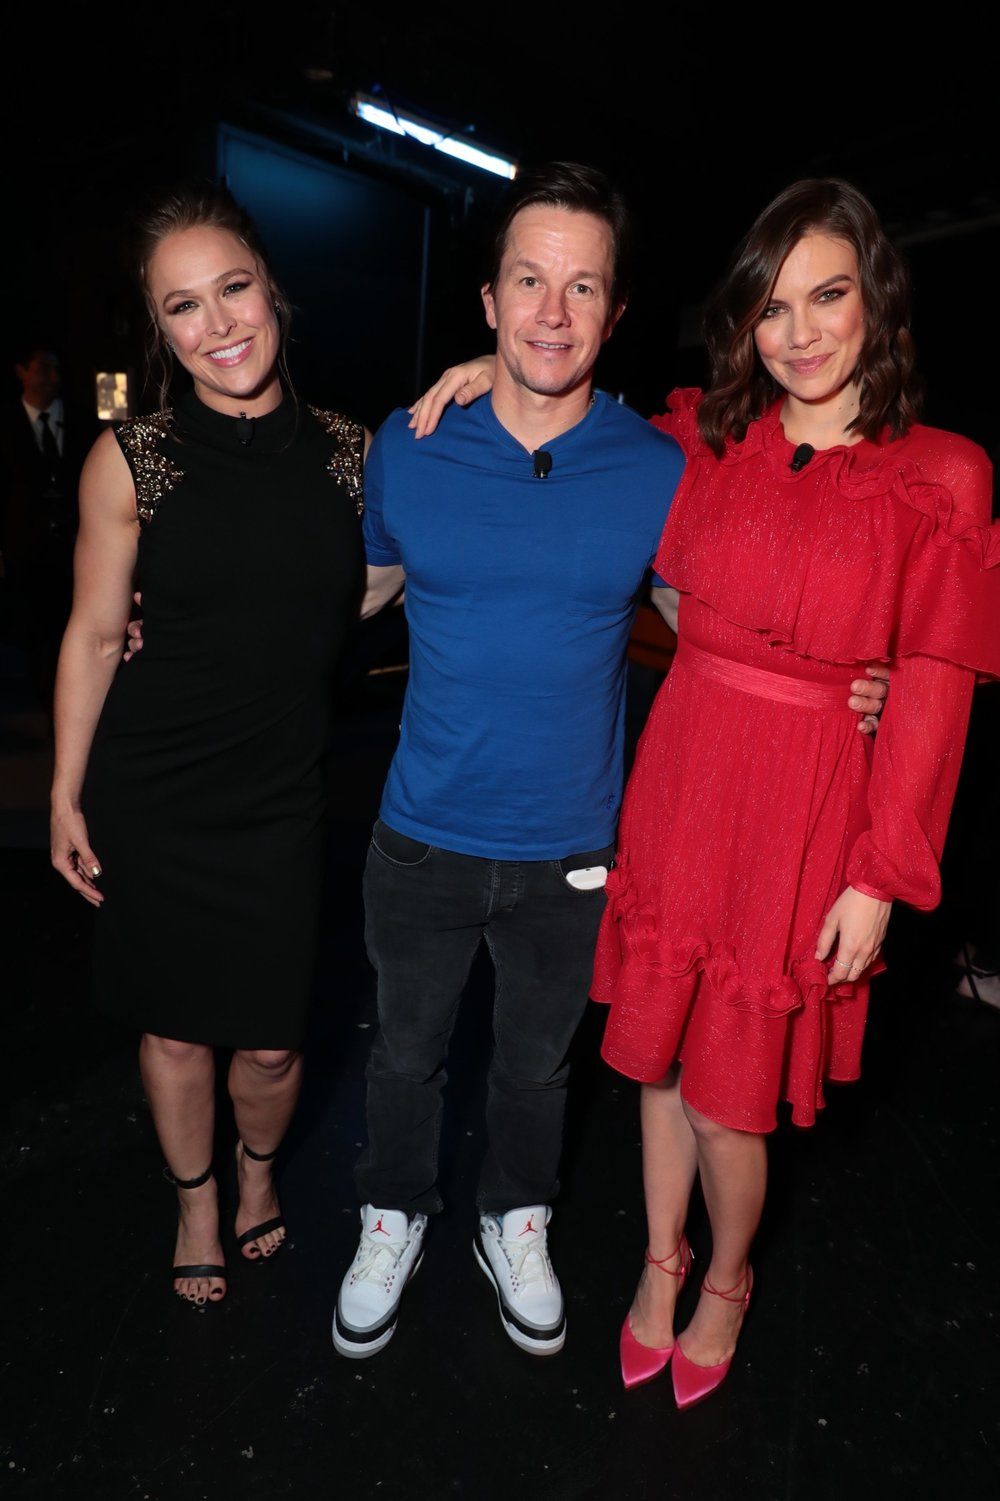 Ronda Rousey, Mark Wahlberg and Lauren Cohan attend STXfilms' 2018 CinemaCon Presentation at The Colosseum of Caesars Palace, Las Vegas, NV Tuesday, April 24, 2018.